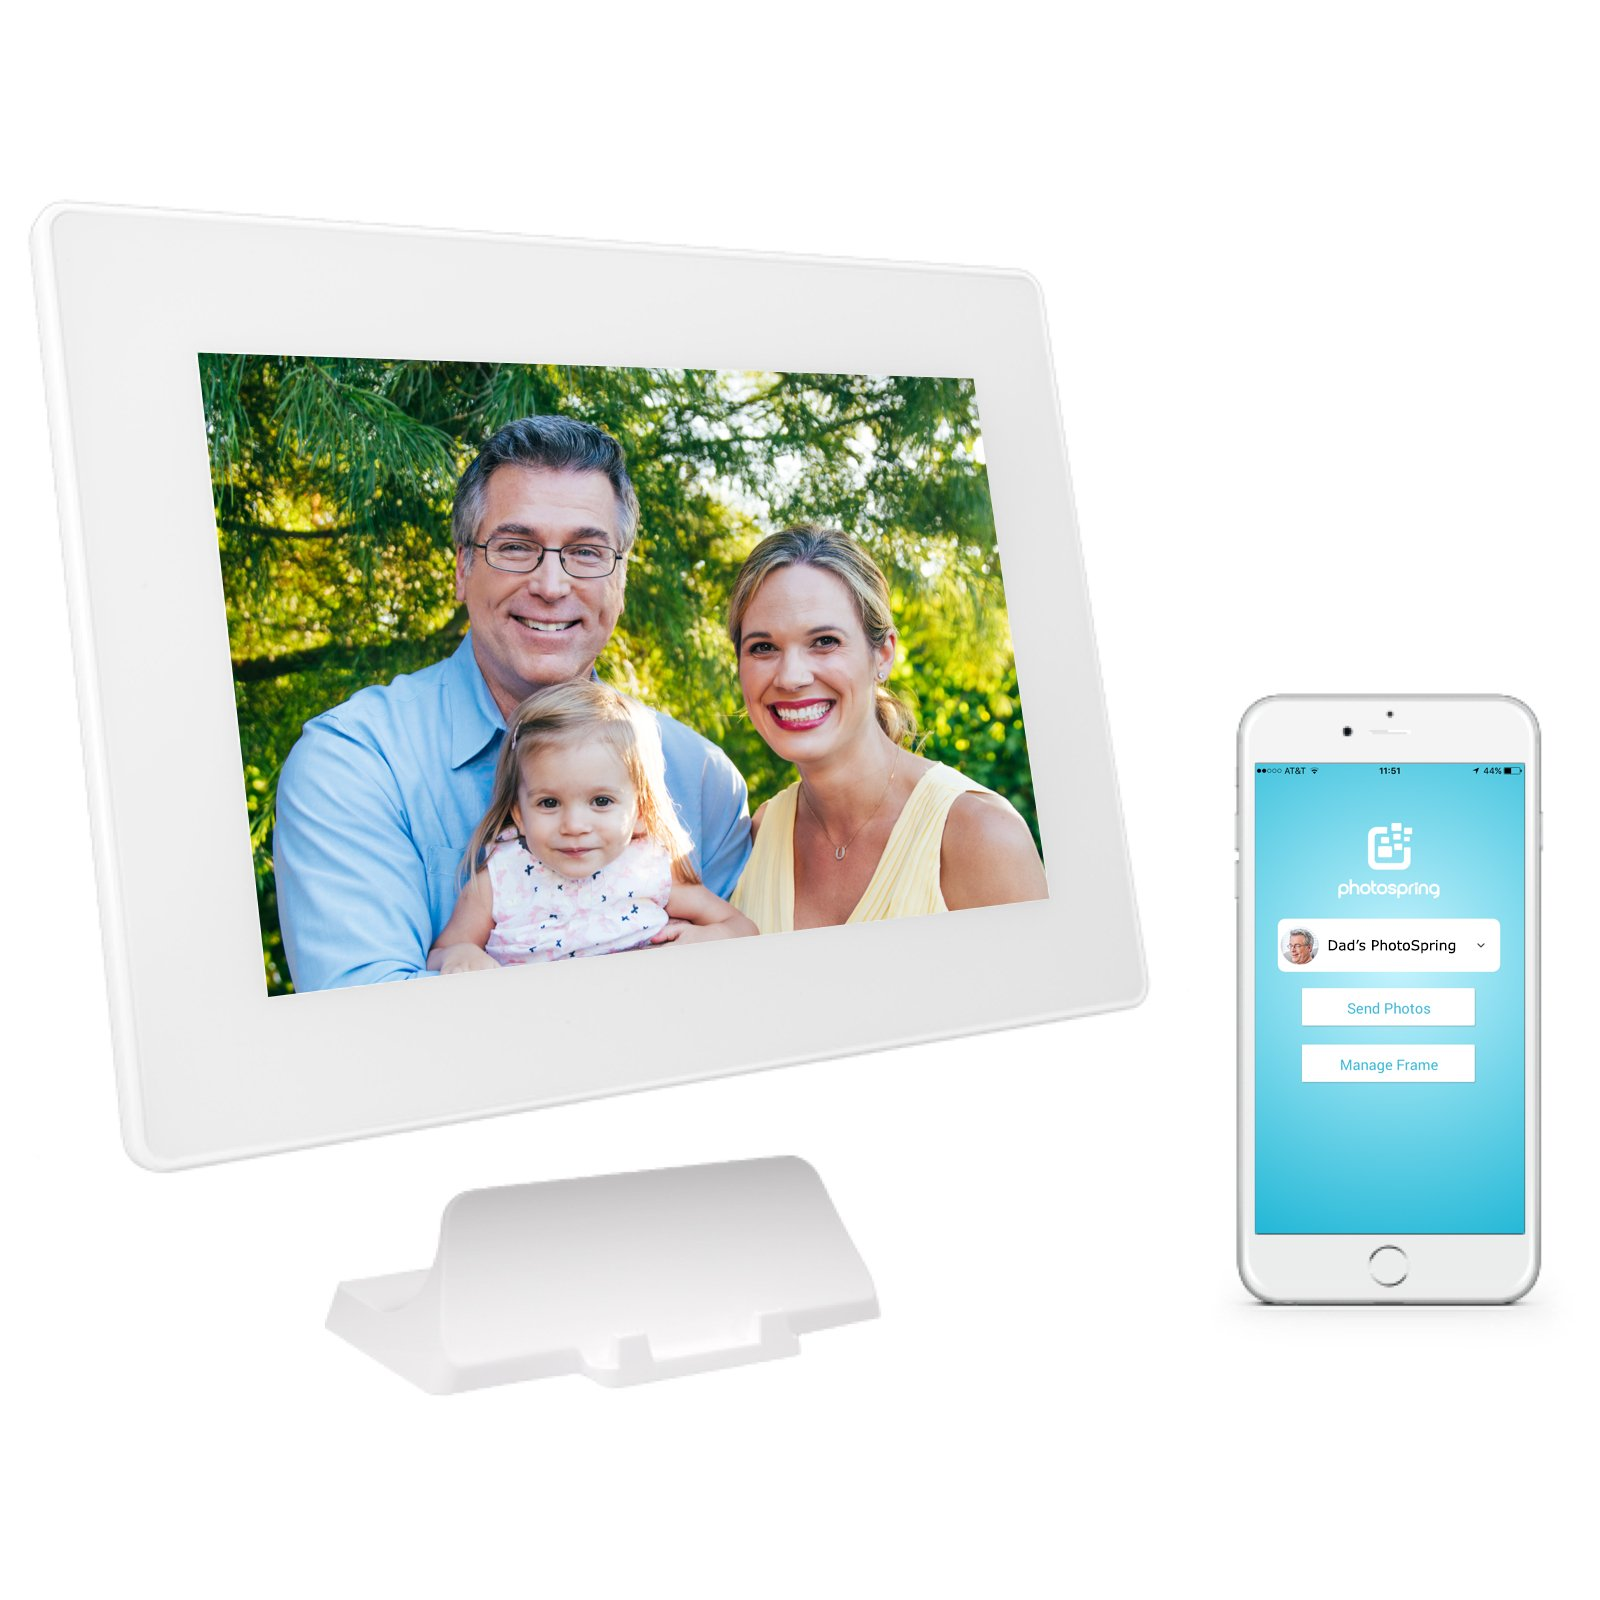 PhotoSpring (16GB) 10-inch WiFi Cloud Digital Picture Frame - Battery, Touch-Screen, Plays Video and Photo Slideshows, HD IPS Display, iPhone & Android app (White - 15,000 Photos) by PhotoSpring